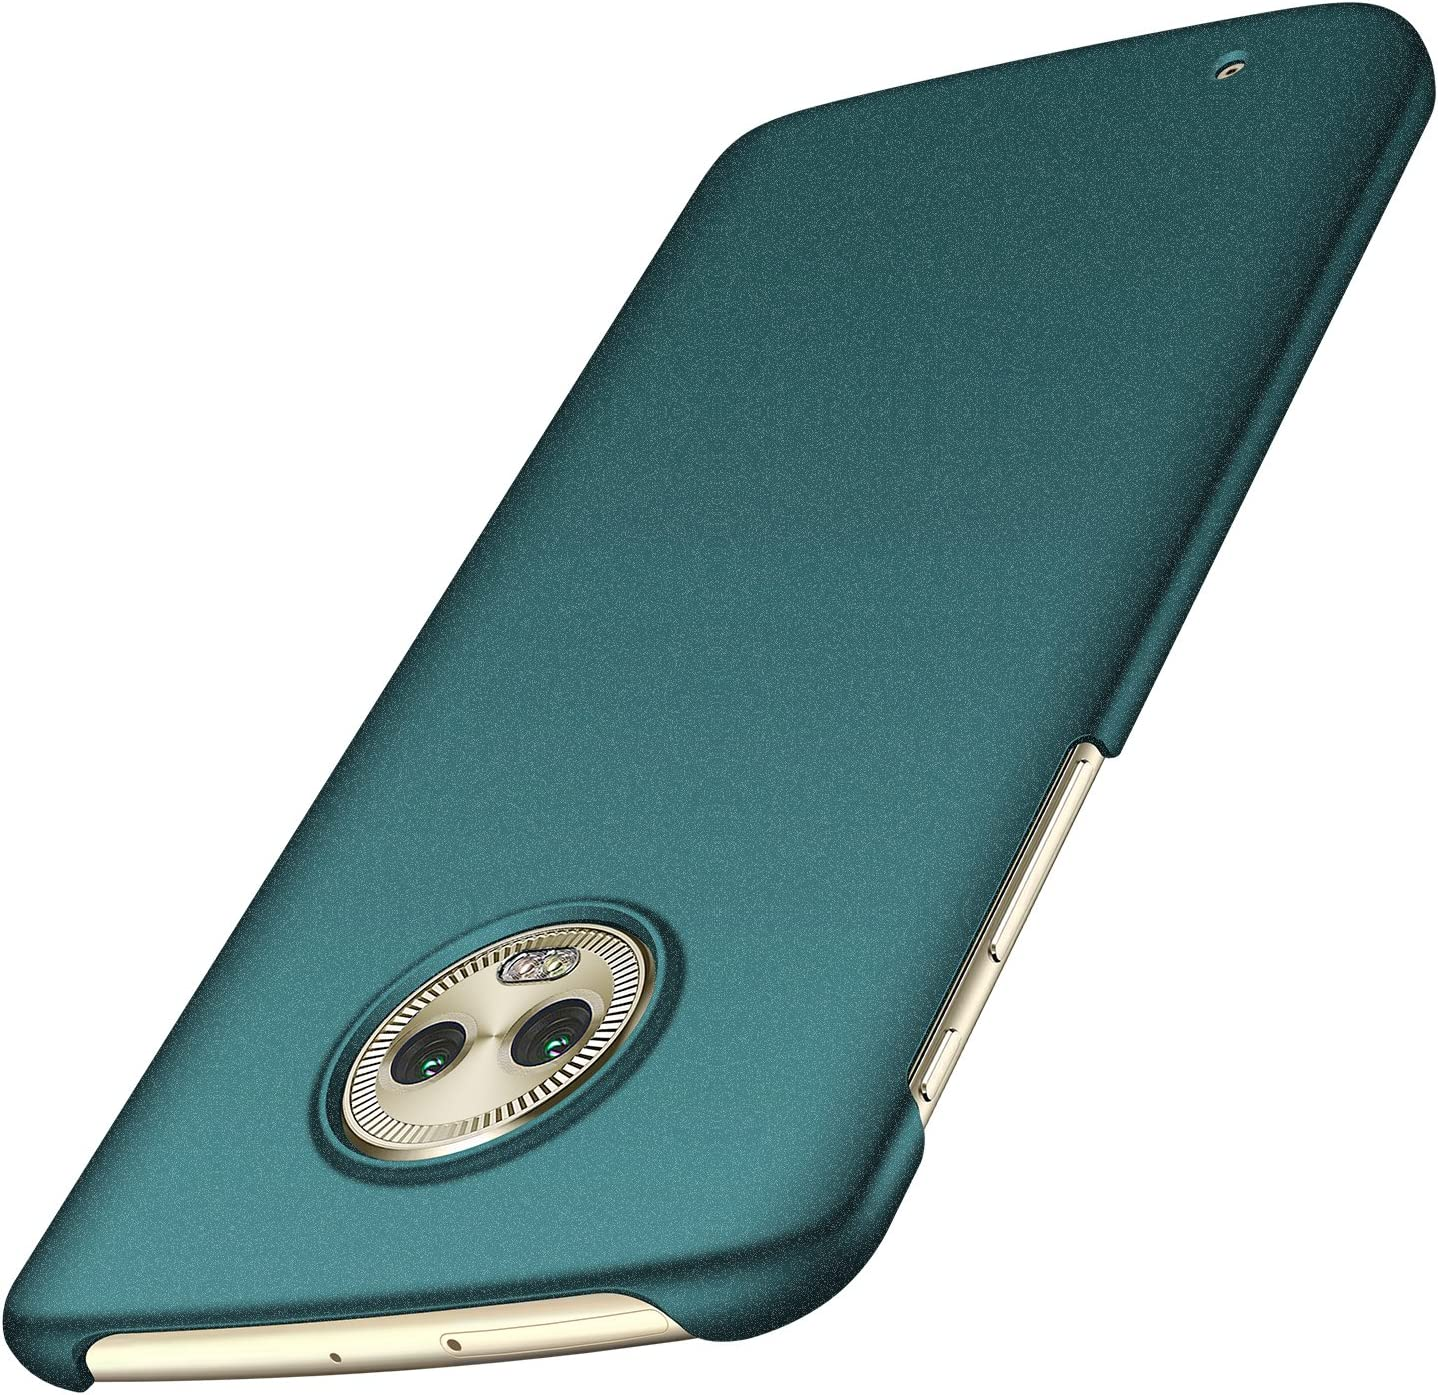 Anccer Moto G6 Case [Colorful Series] [Ultra-Thin] [Anti-Drop] Premium Material Slim Cover for Moto G6 (Not Fit for Moto G6 Plus) - Gravel Green